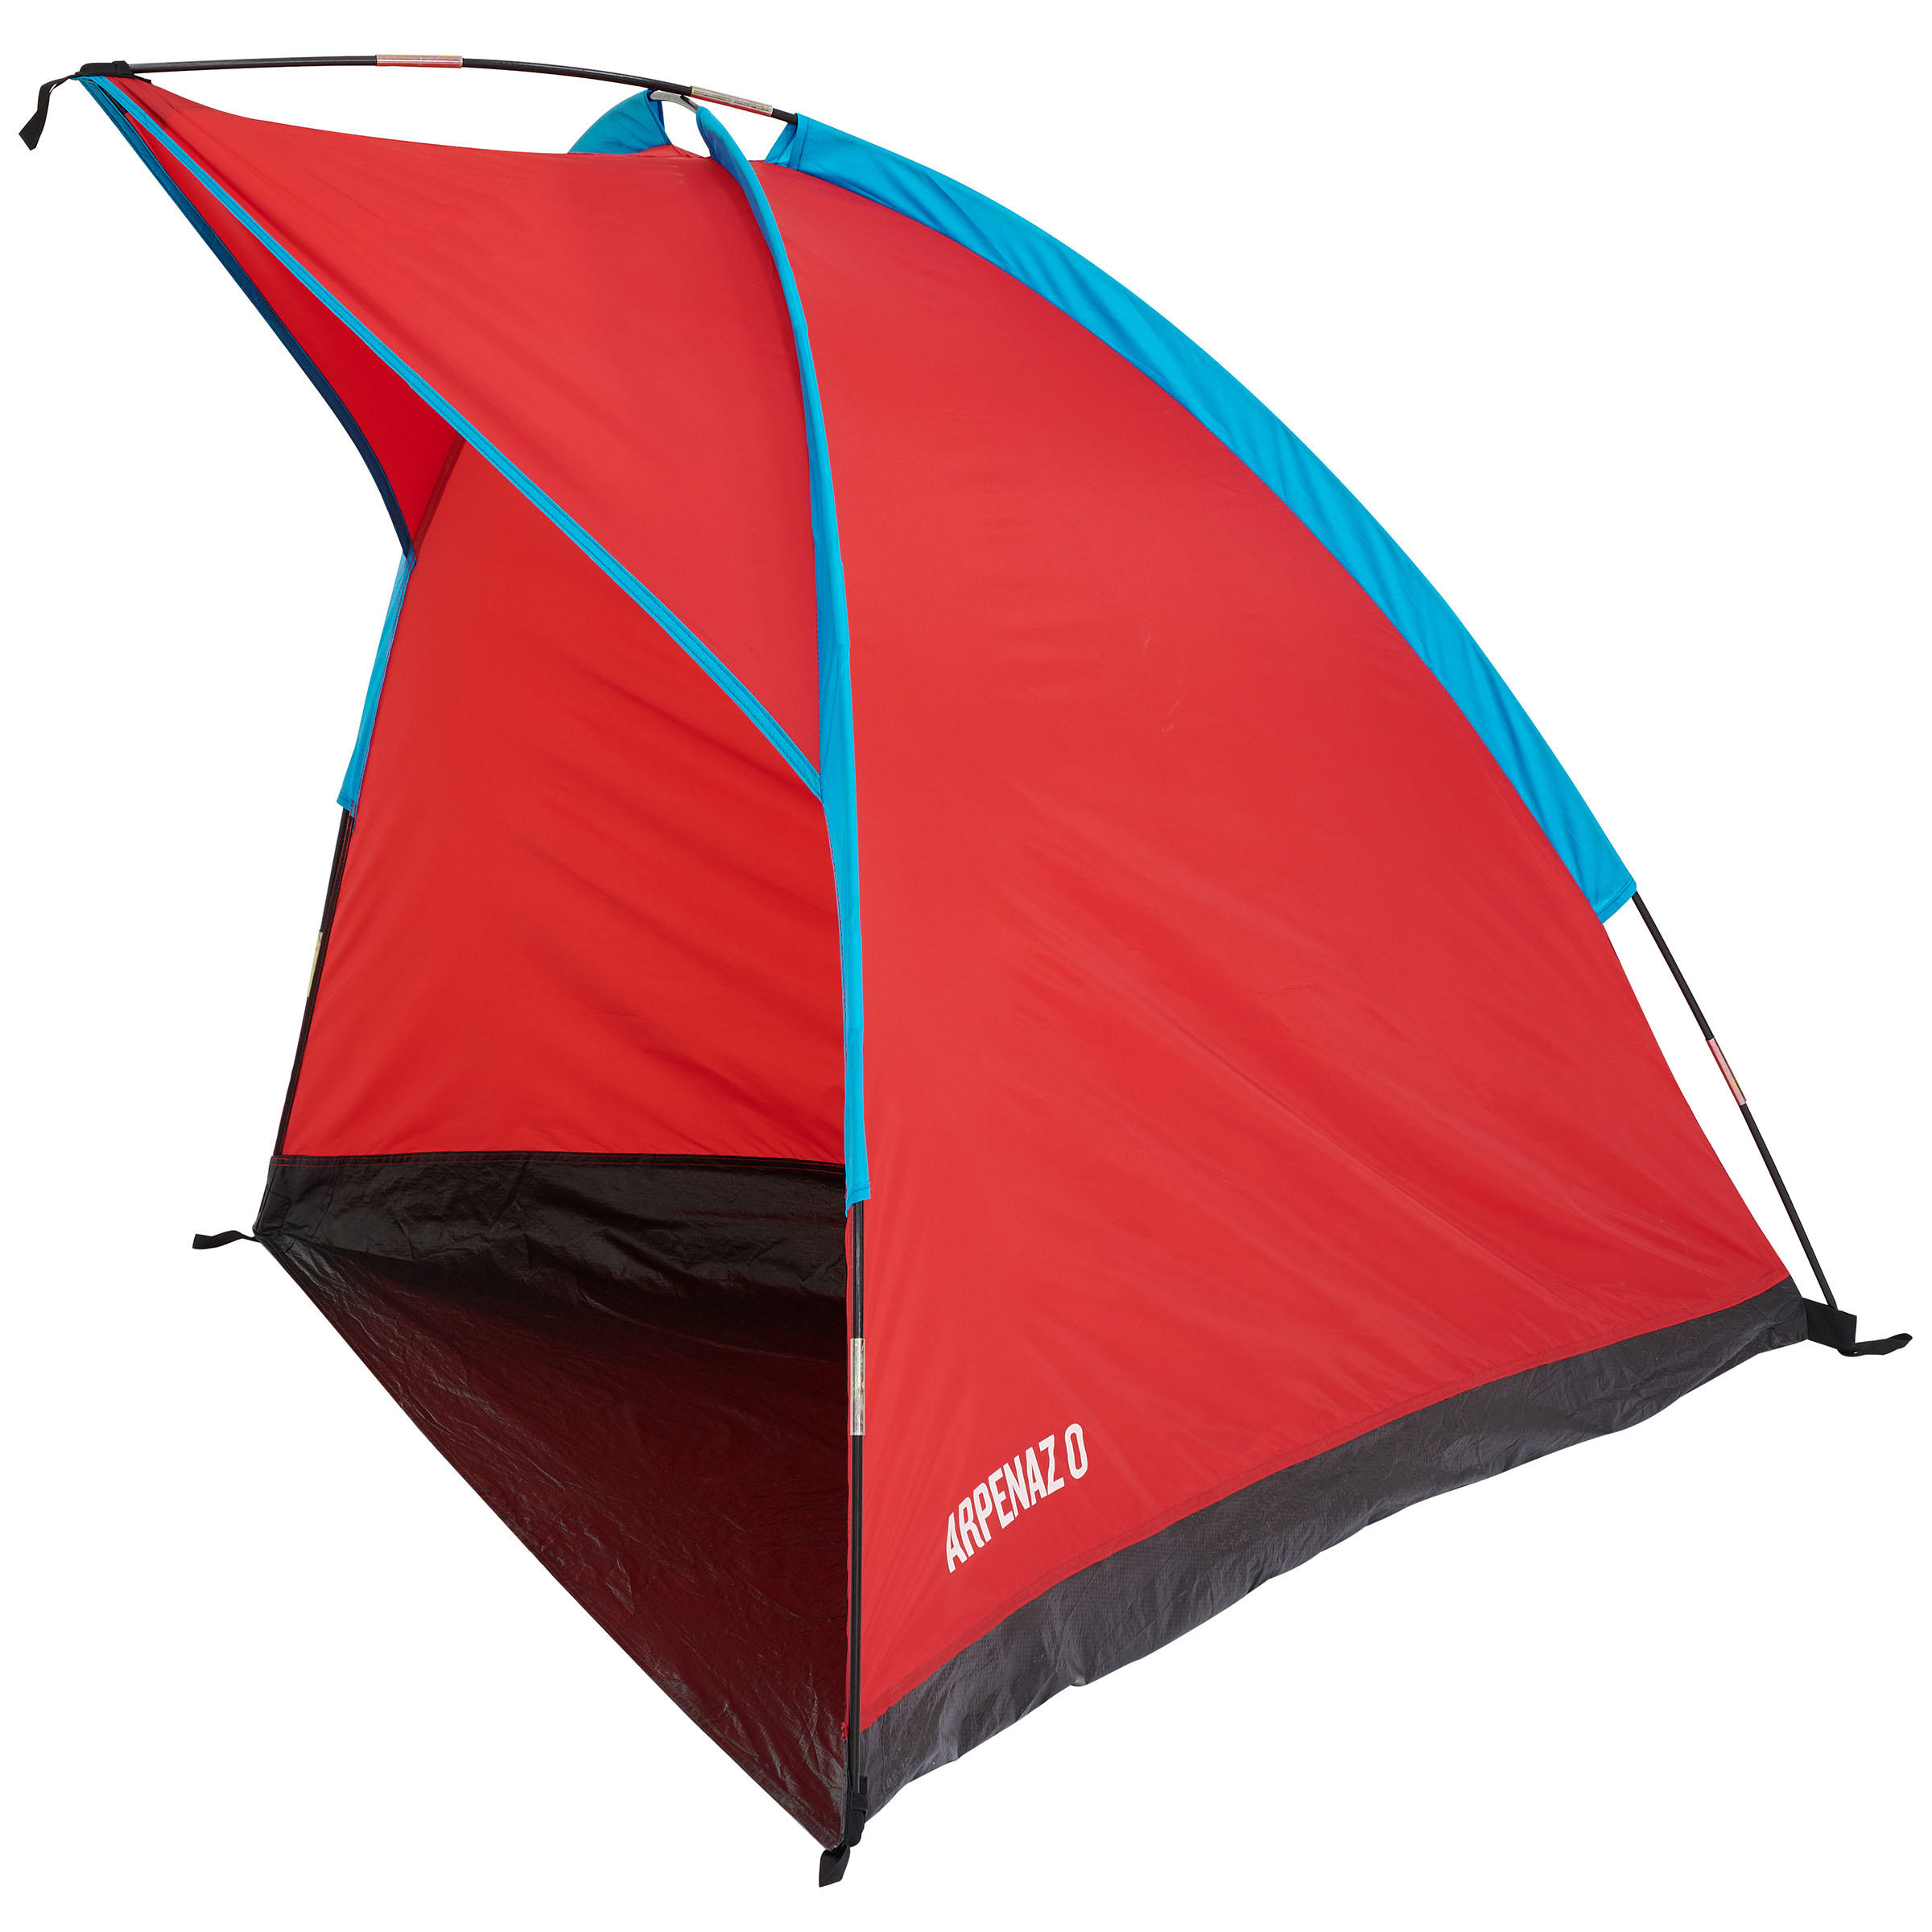 SHELTER HIKING NATURE ARPENAZ 0 RED